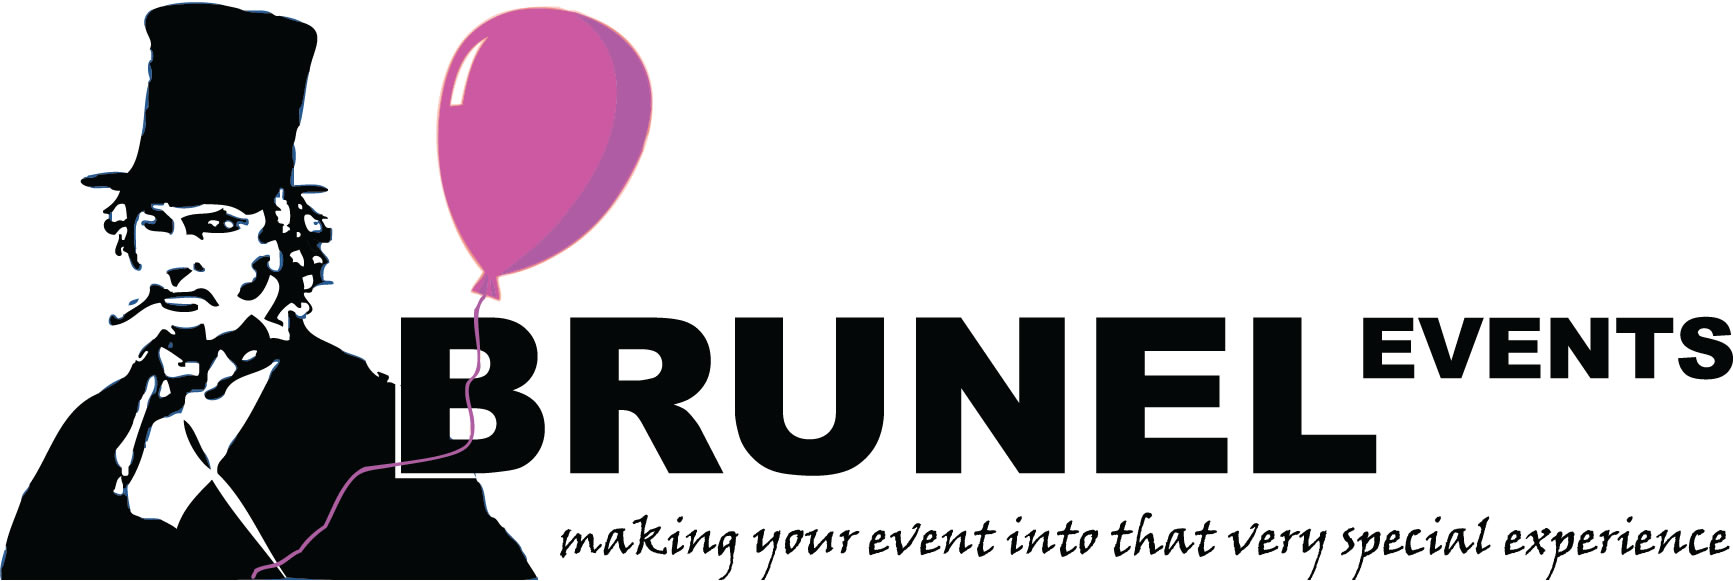 Brunel Events